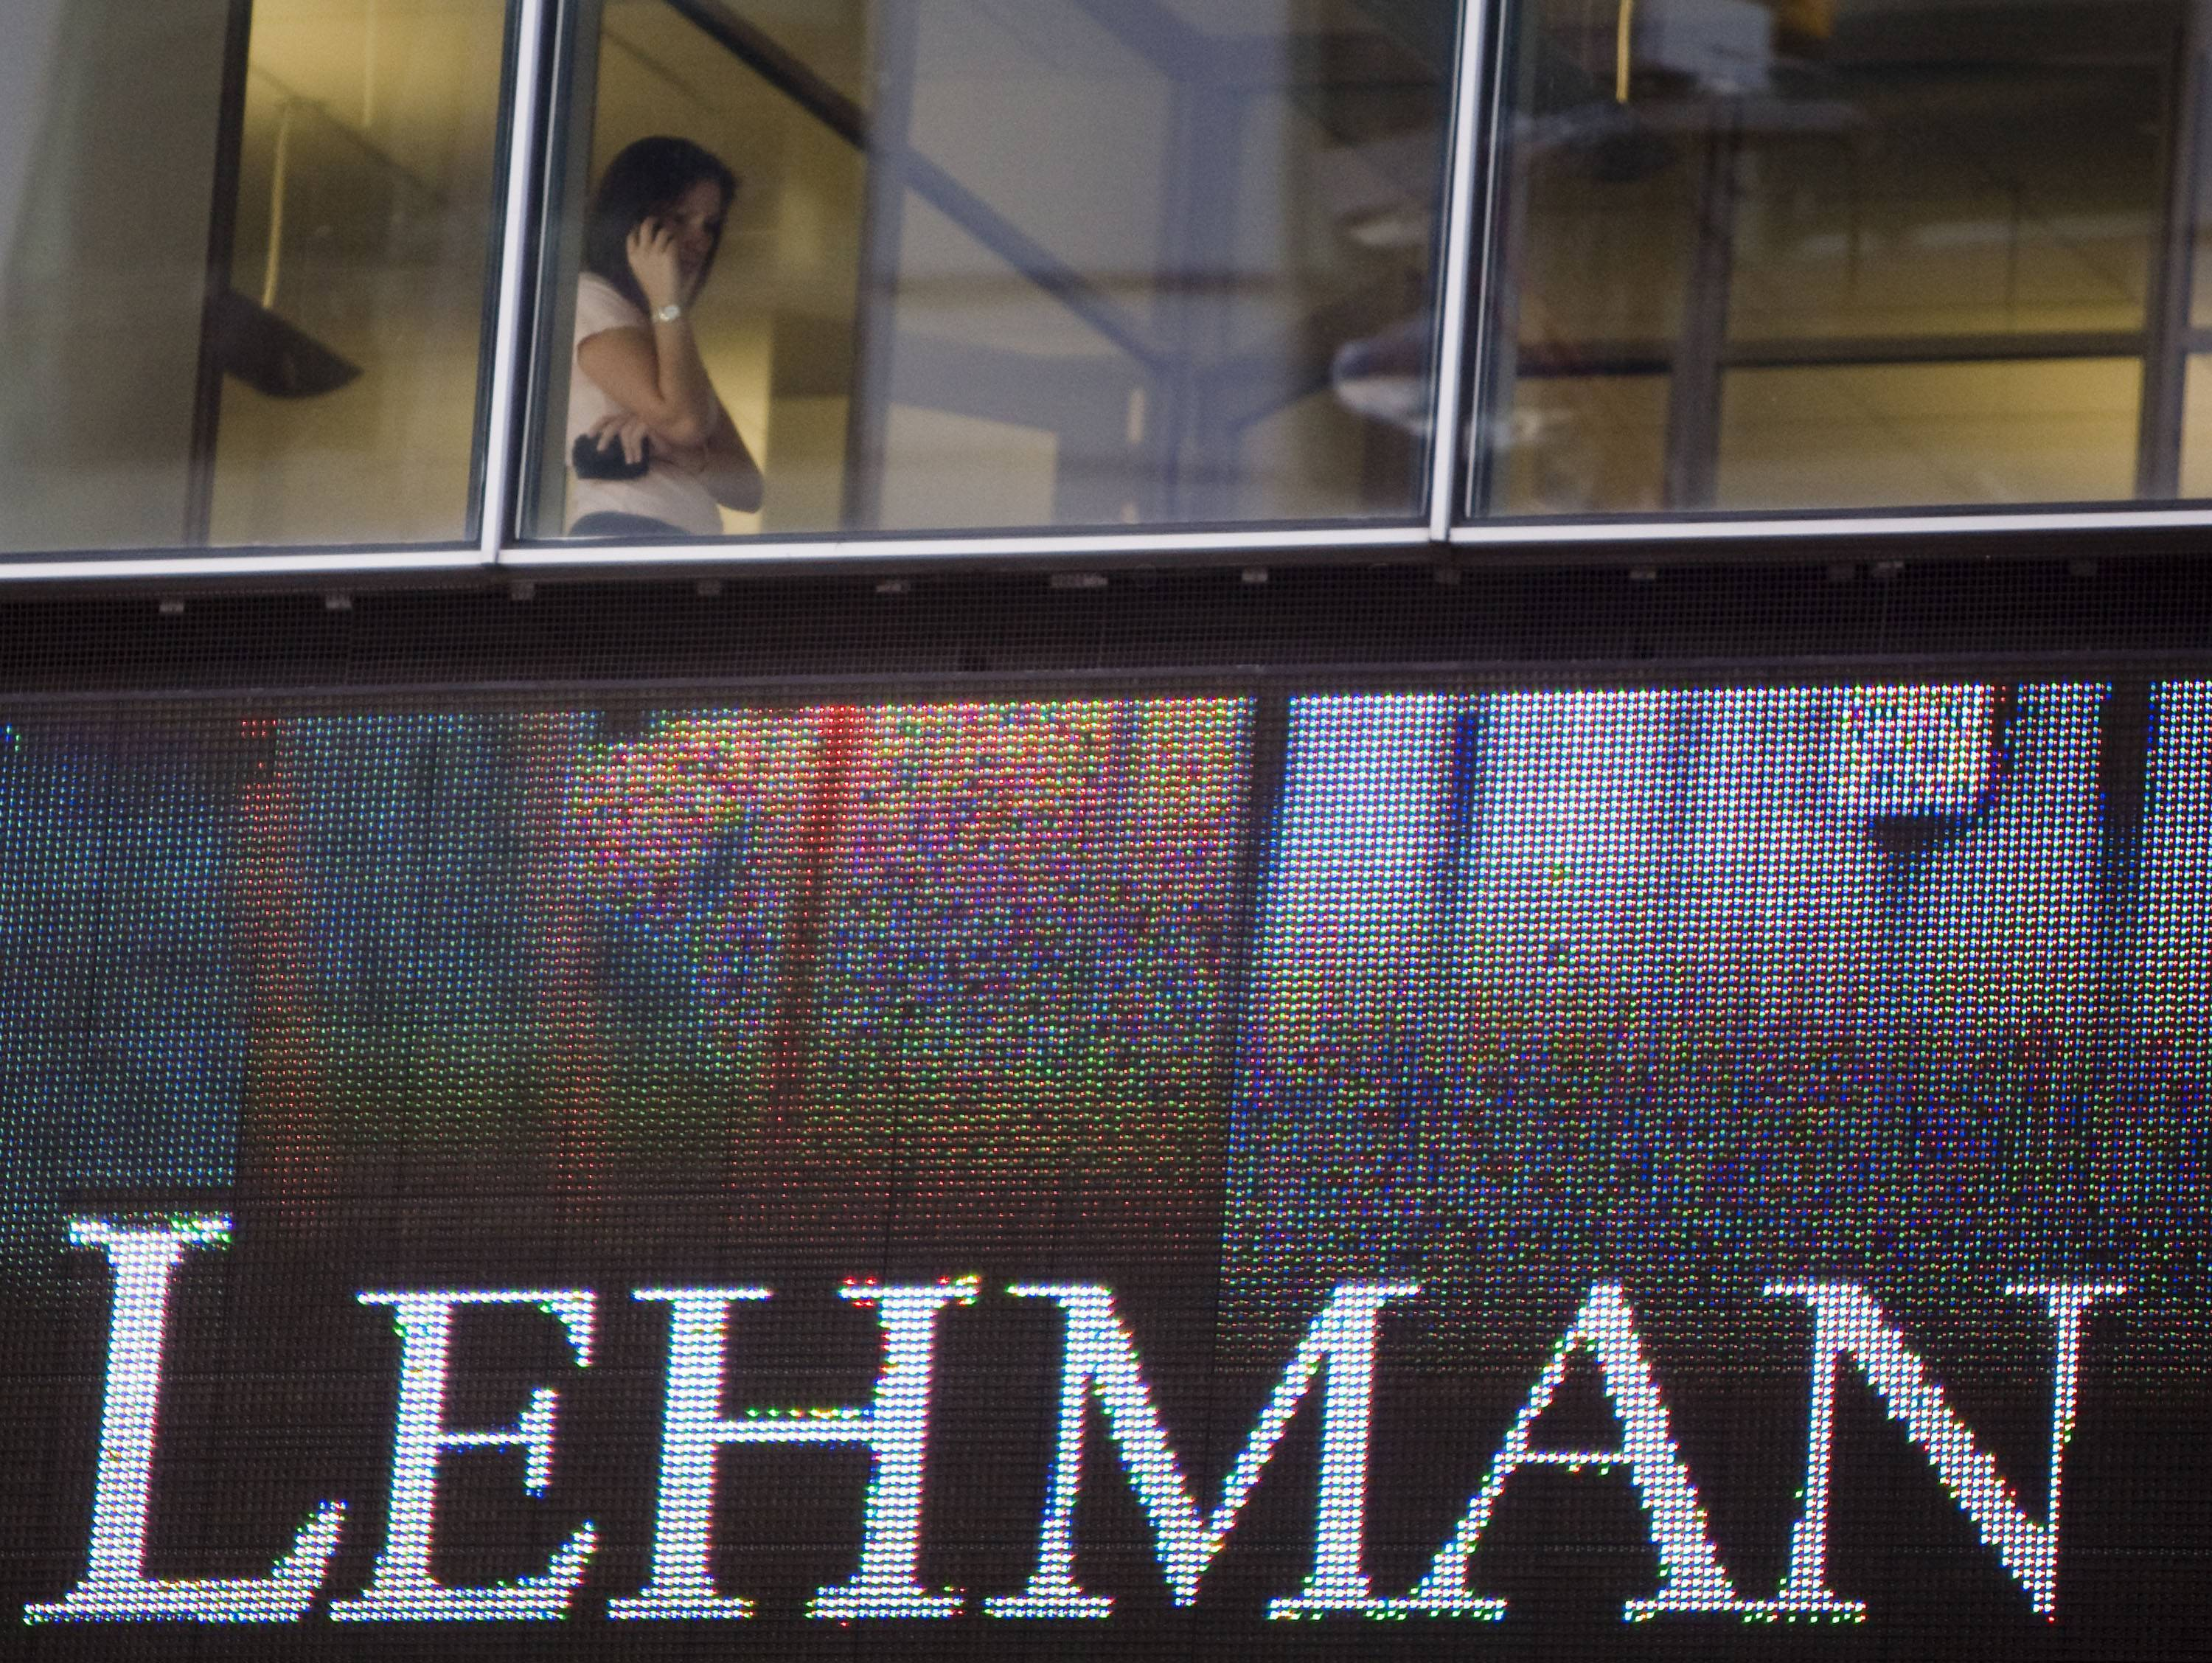 A woman speaks on a cellphone inside the headquarters of Lehman Brothers in New York in Sept. 2008.